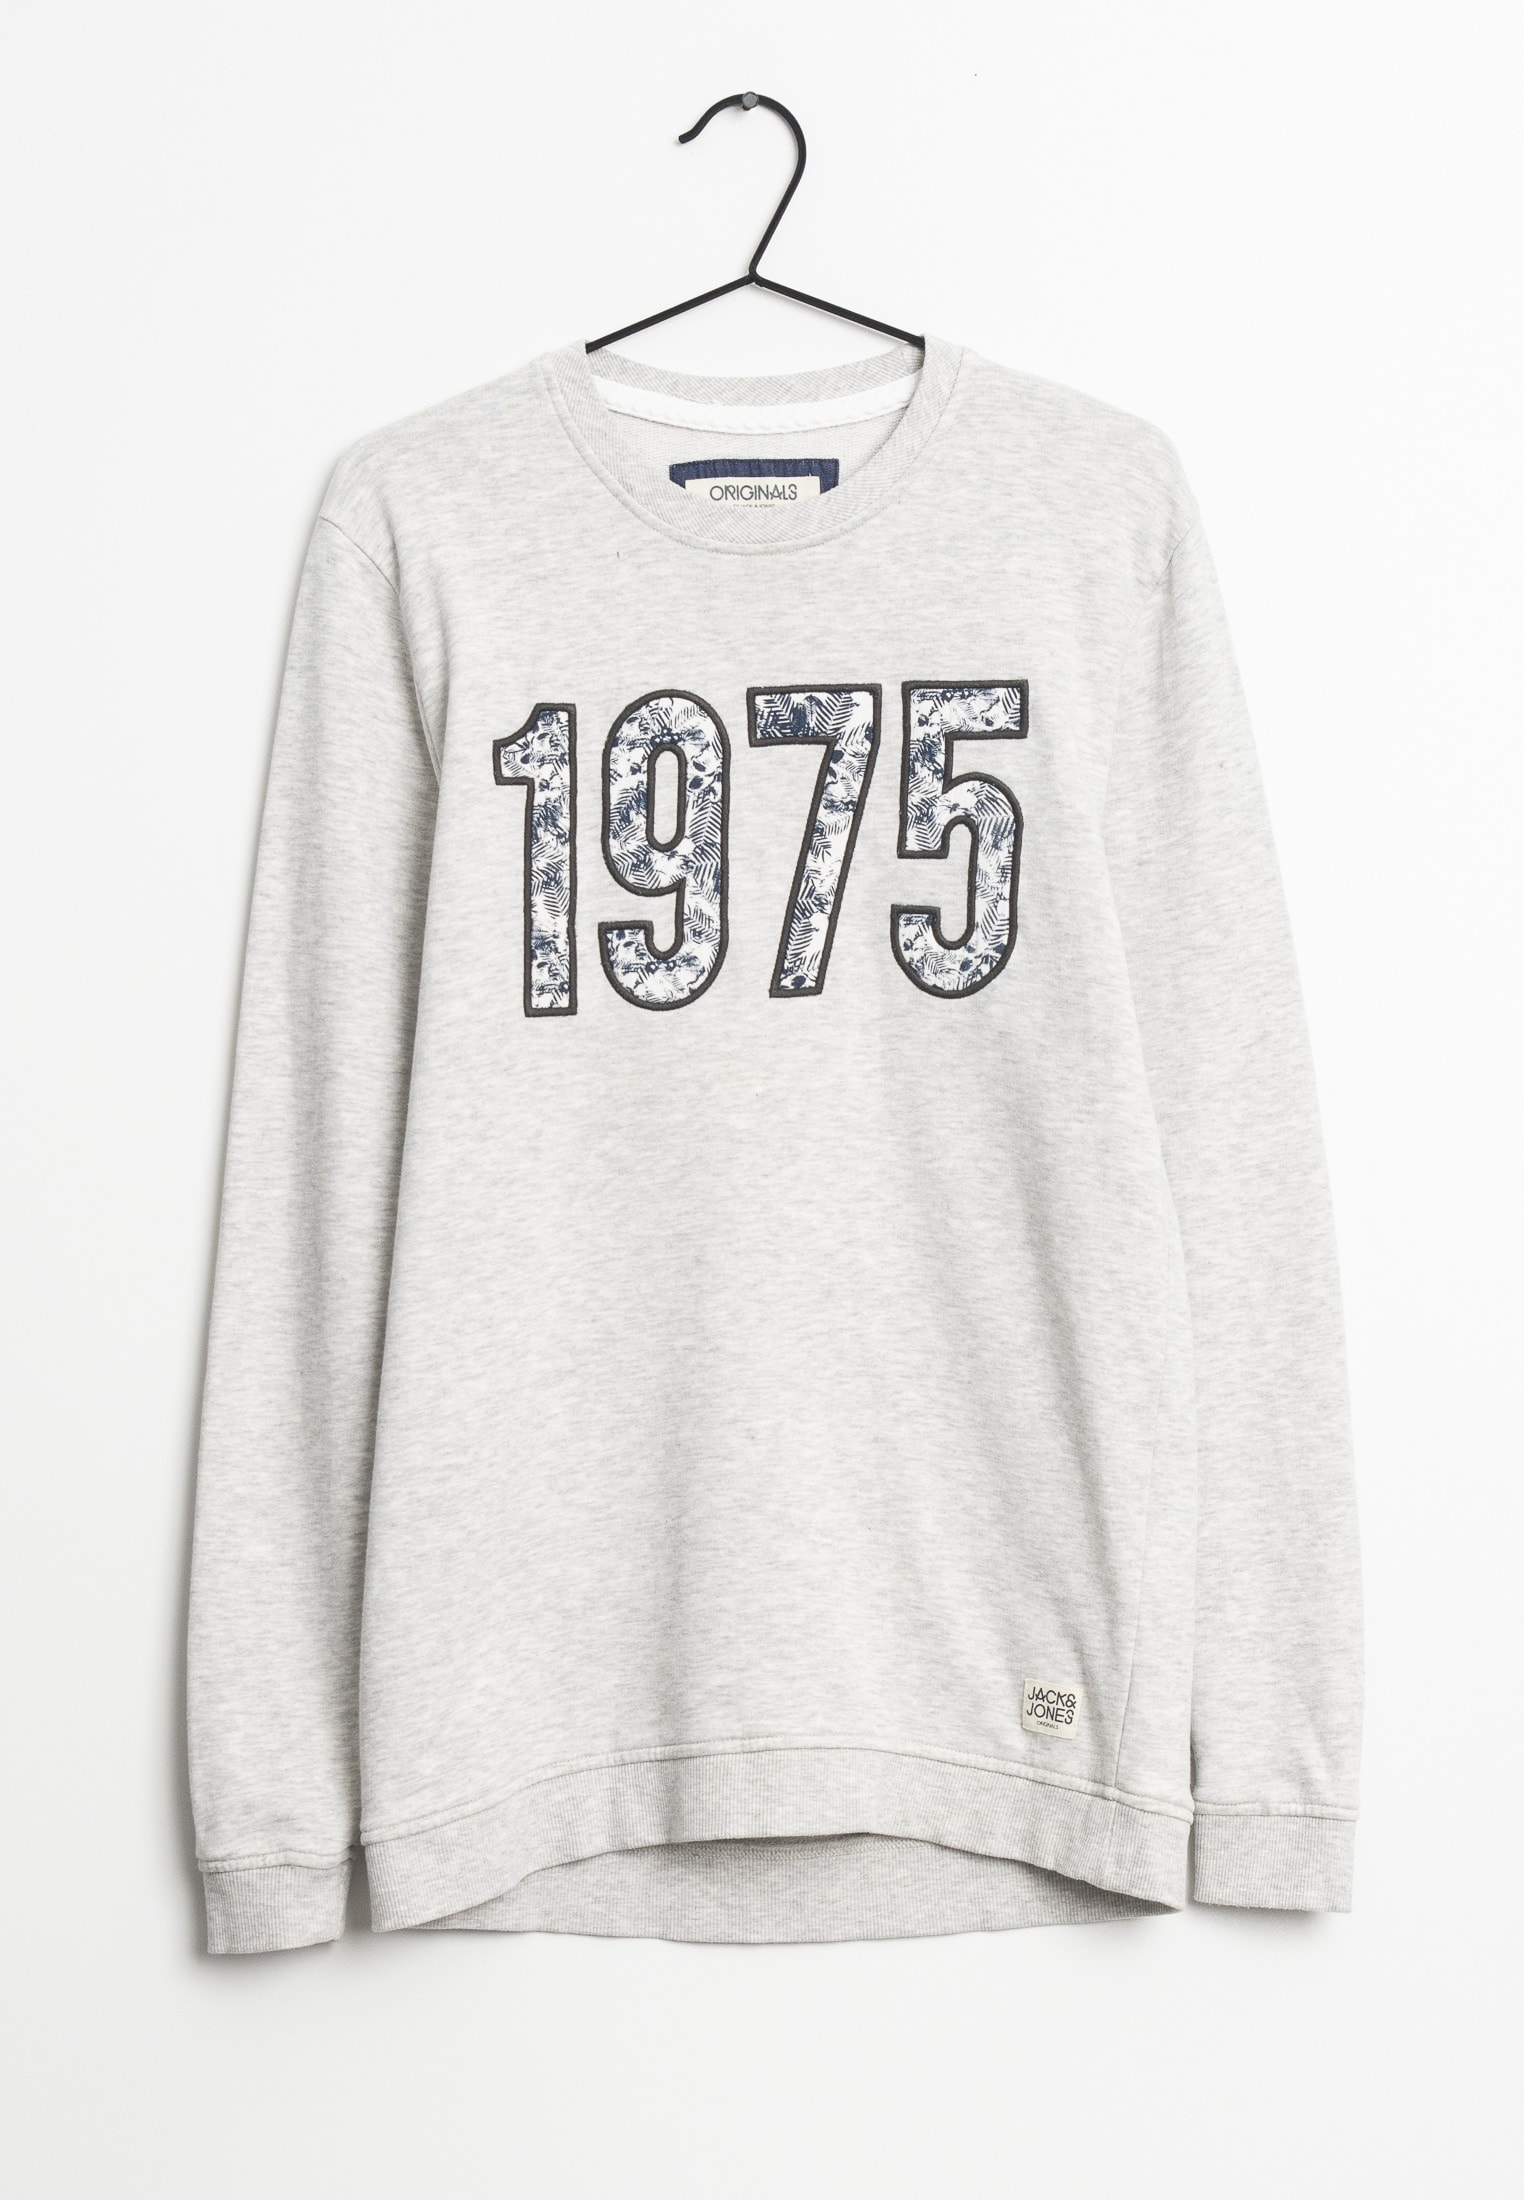 Jack & Jones Sweatshirt / Fleecejacke Grau Gr.S